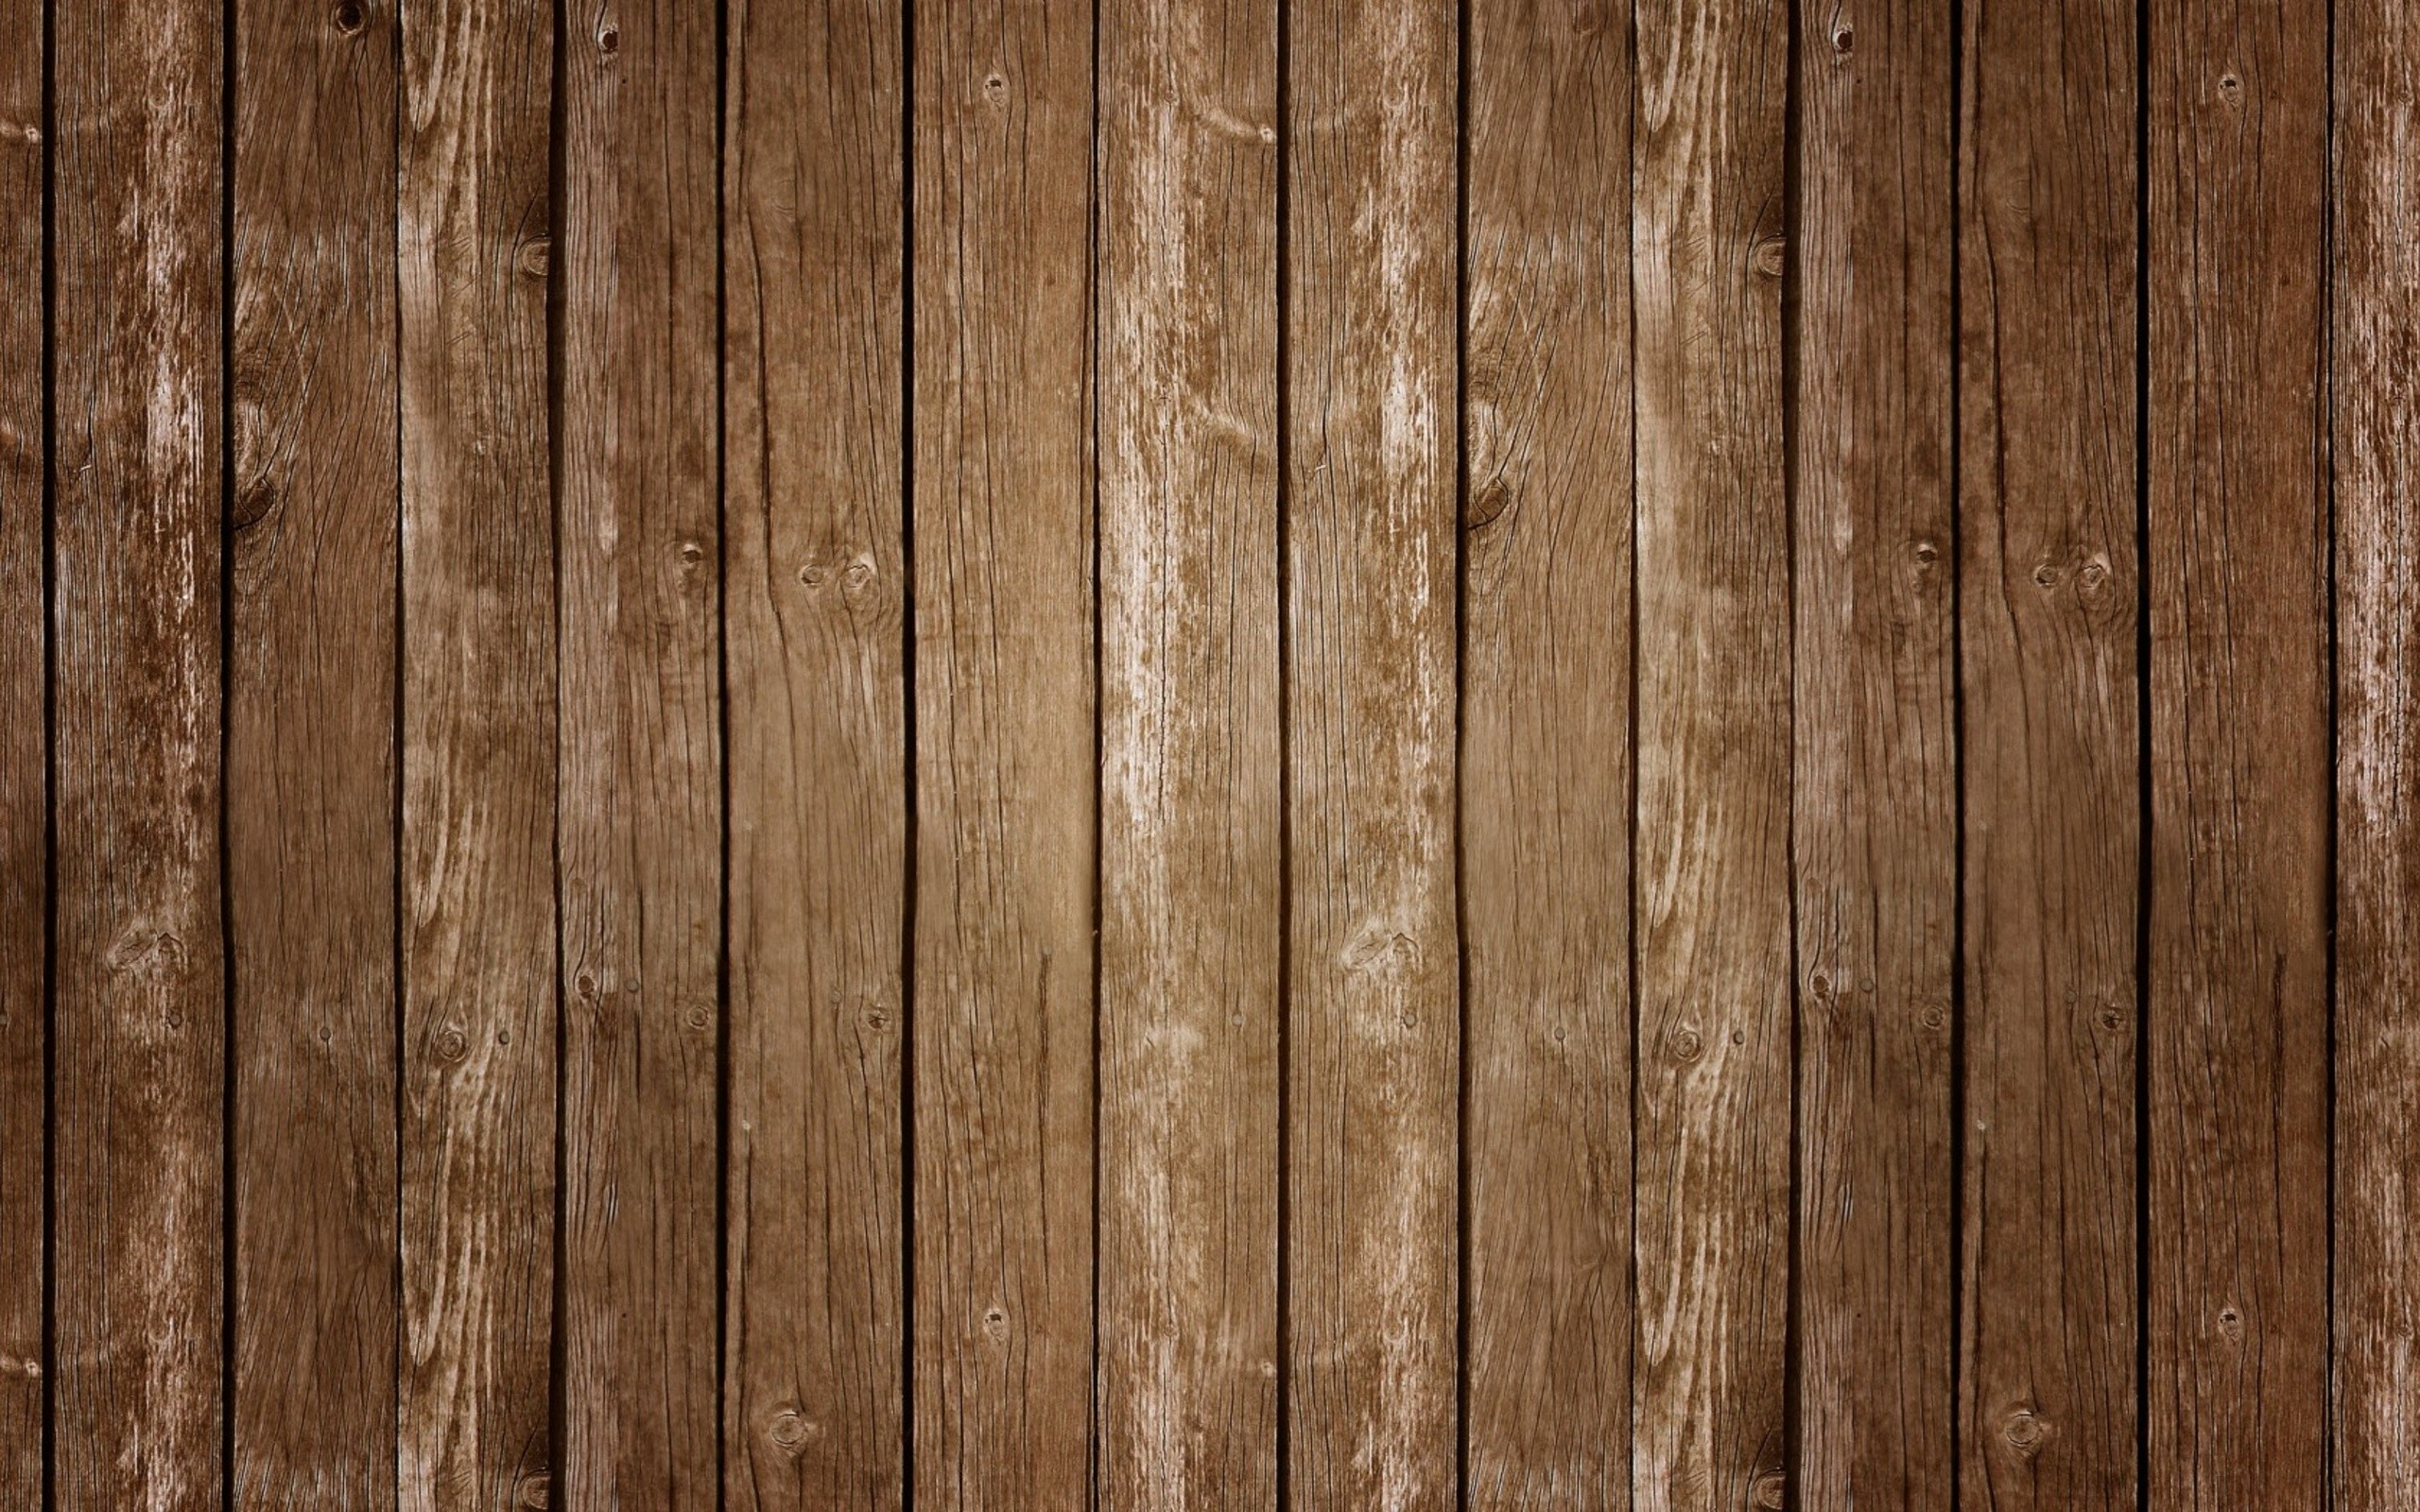 2560x1600 Pattern - Wood Pattern Wallpaper